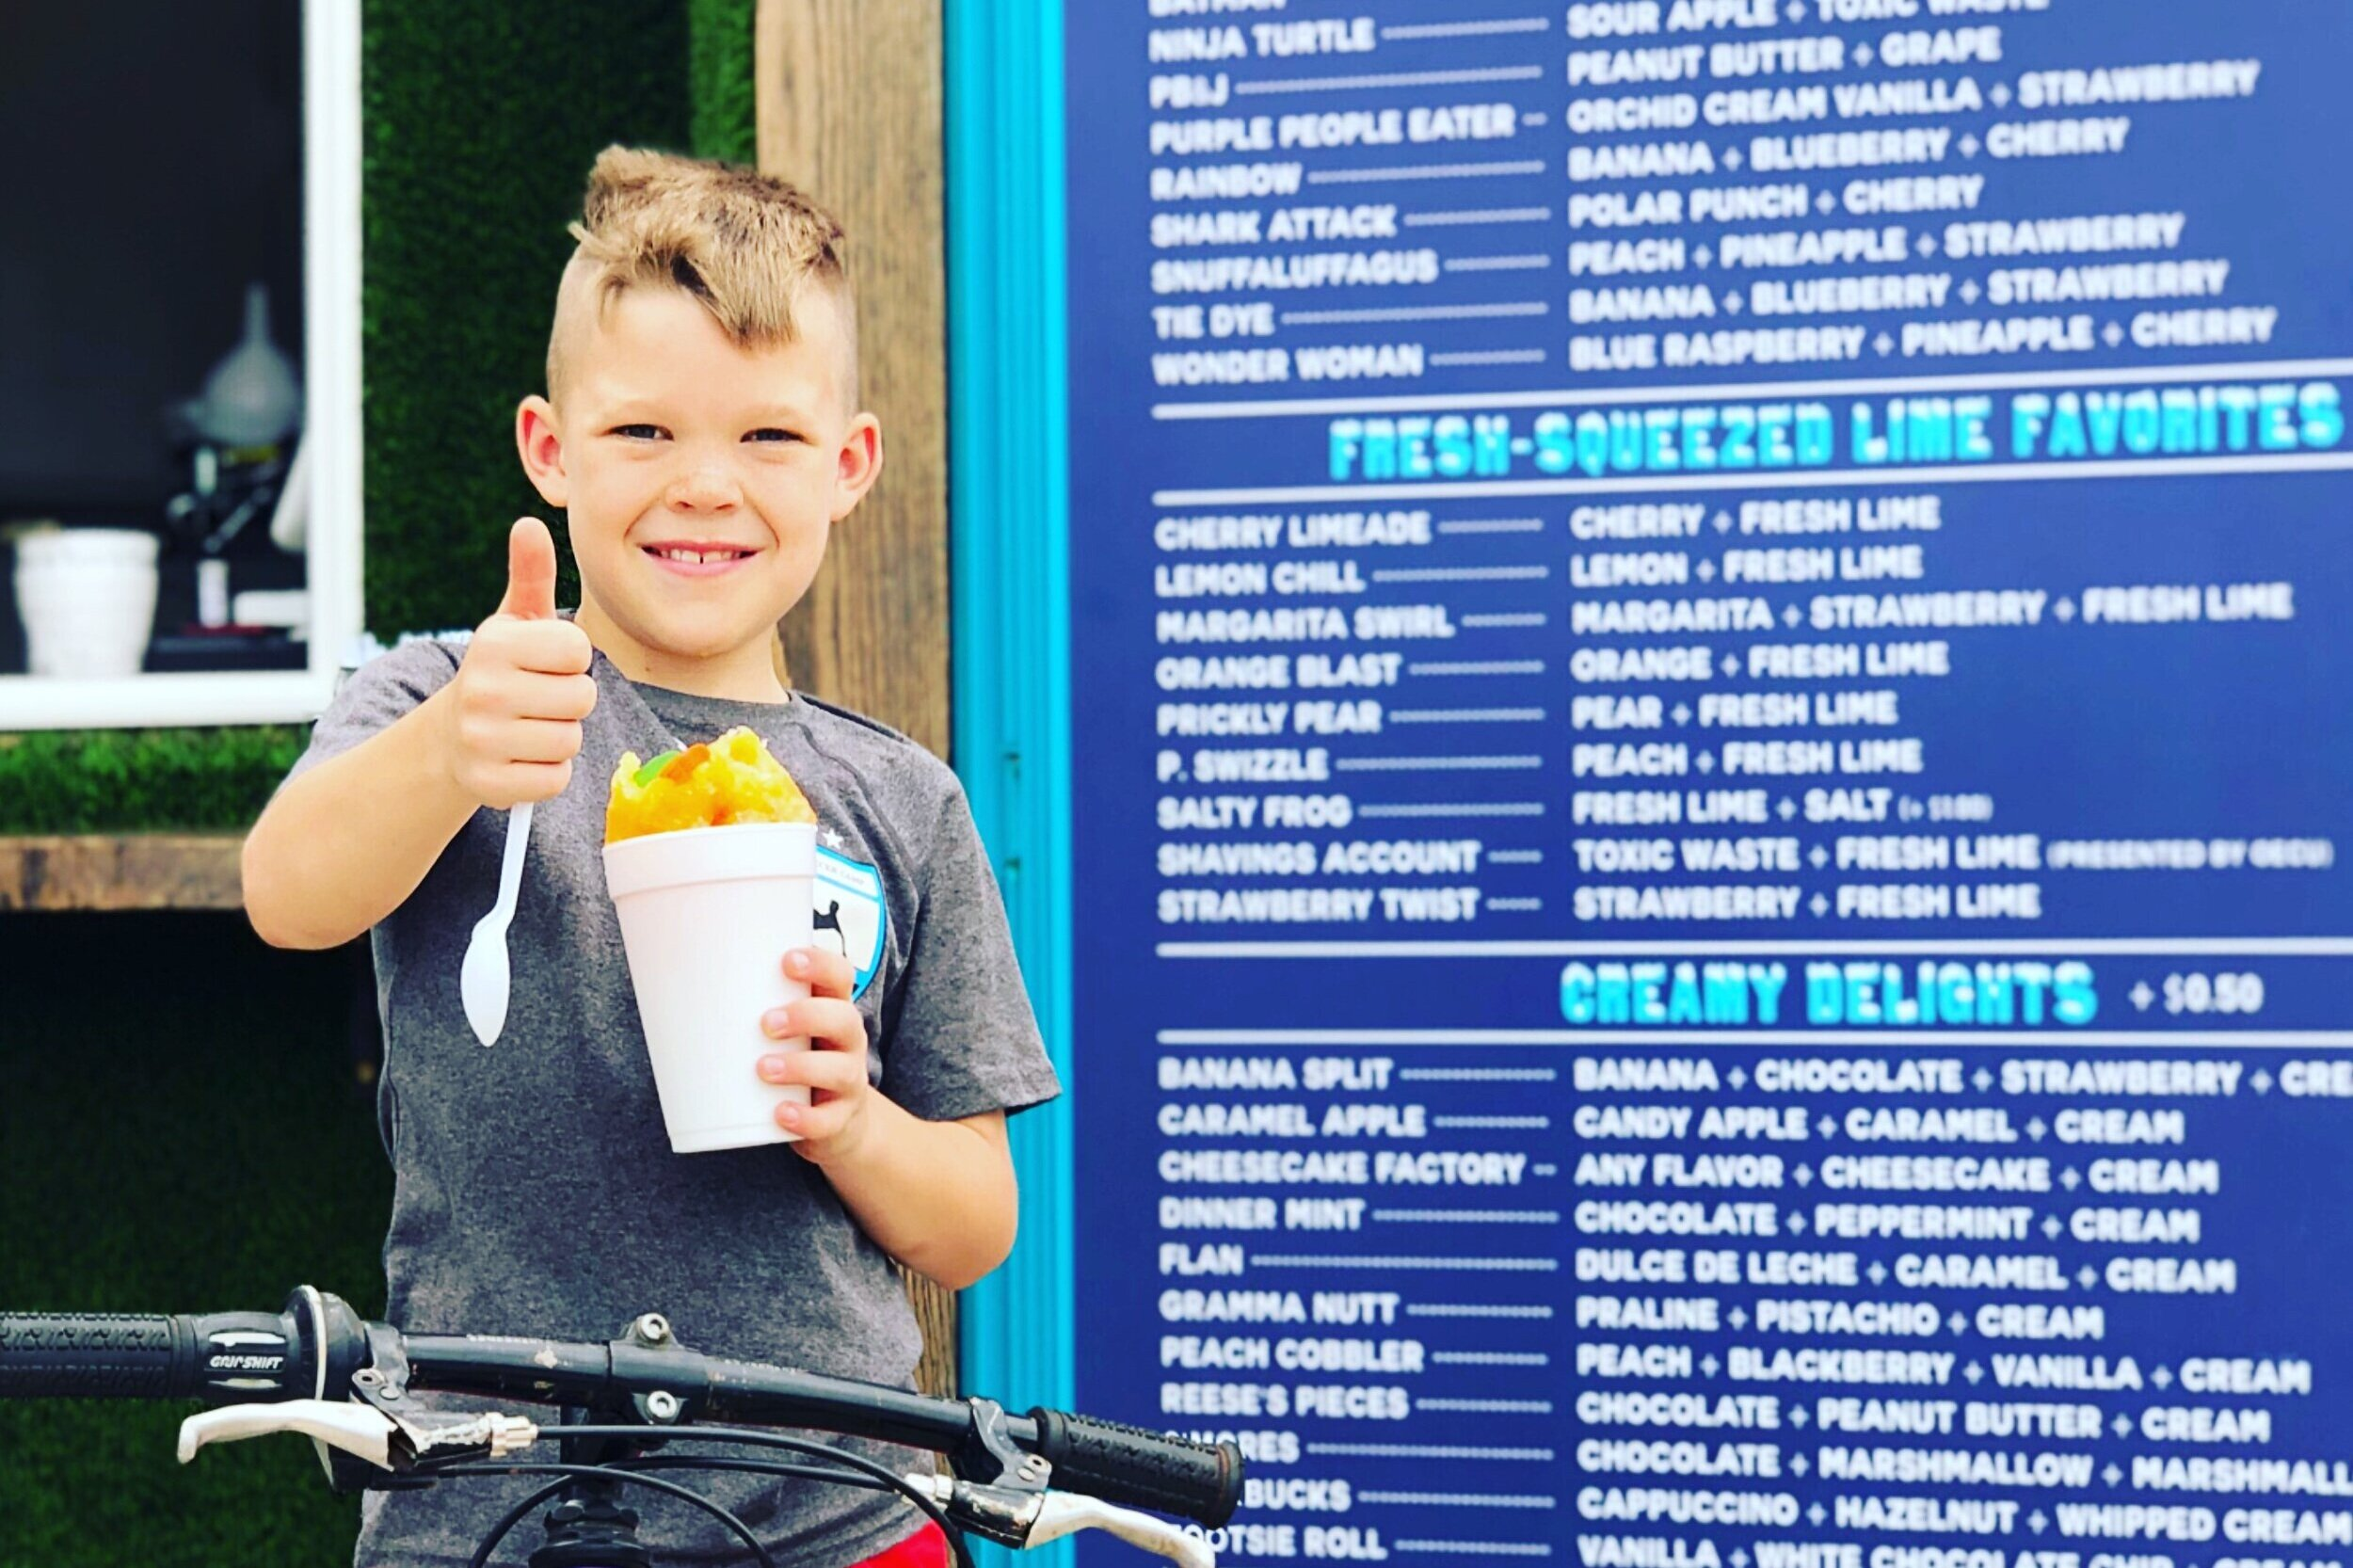 Sasquatch Shaved Ice A non-profit snow cone stand offering 112 flavors -